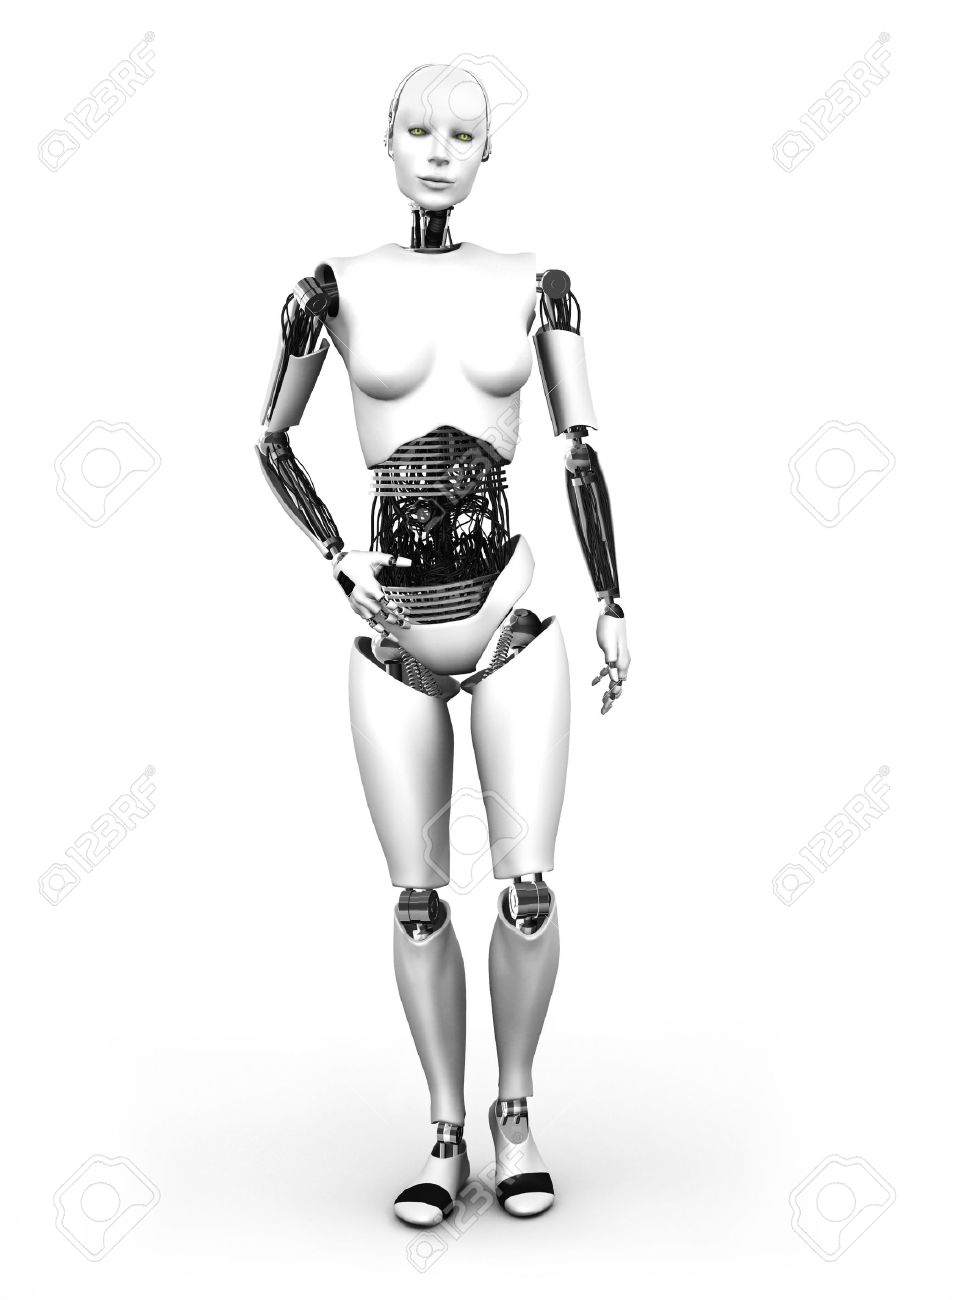 A full body image of a robot woman standing  White background Stock Photo - 18544328